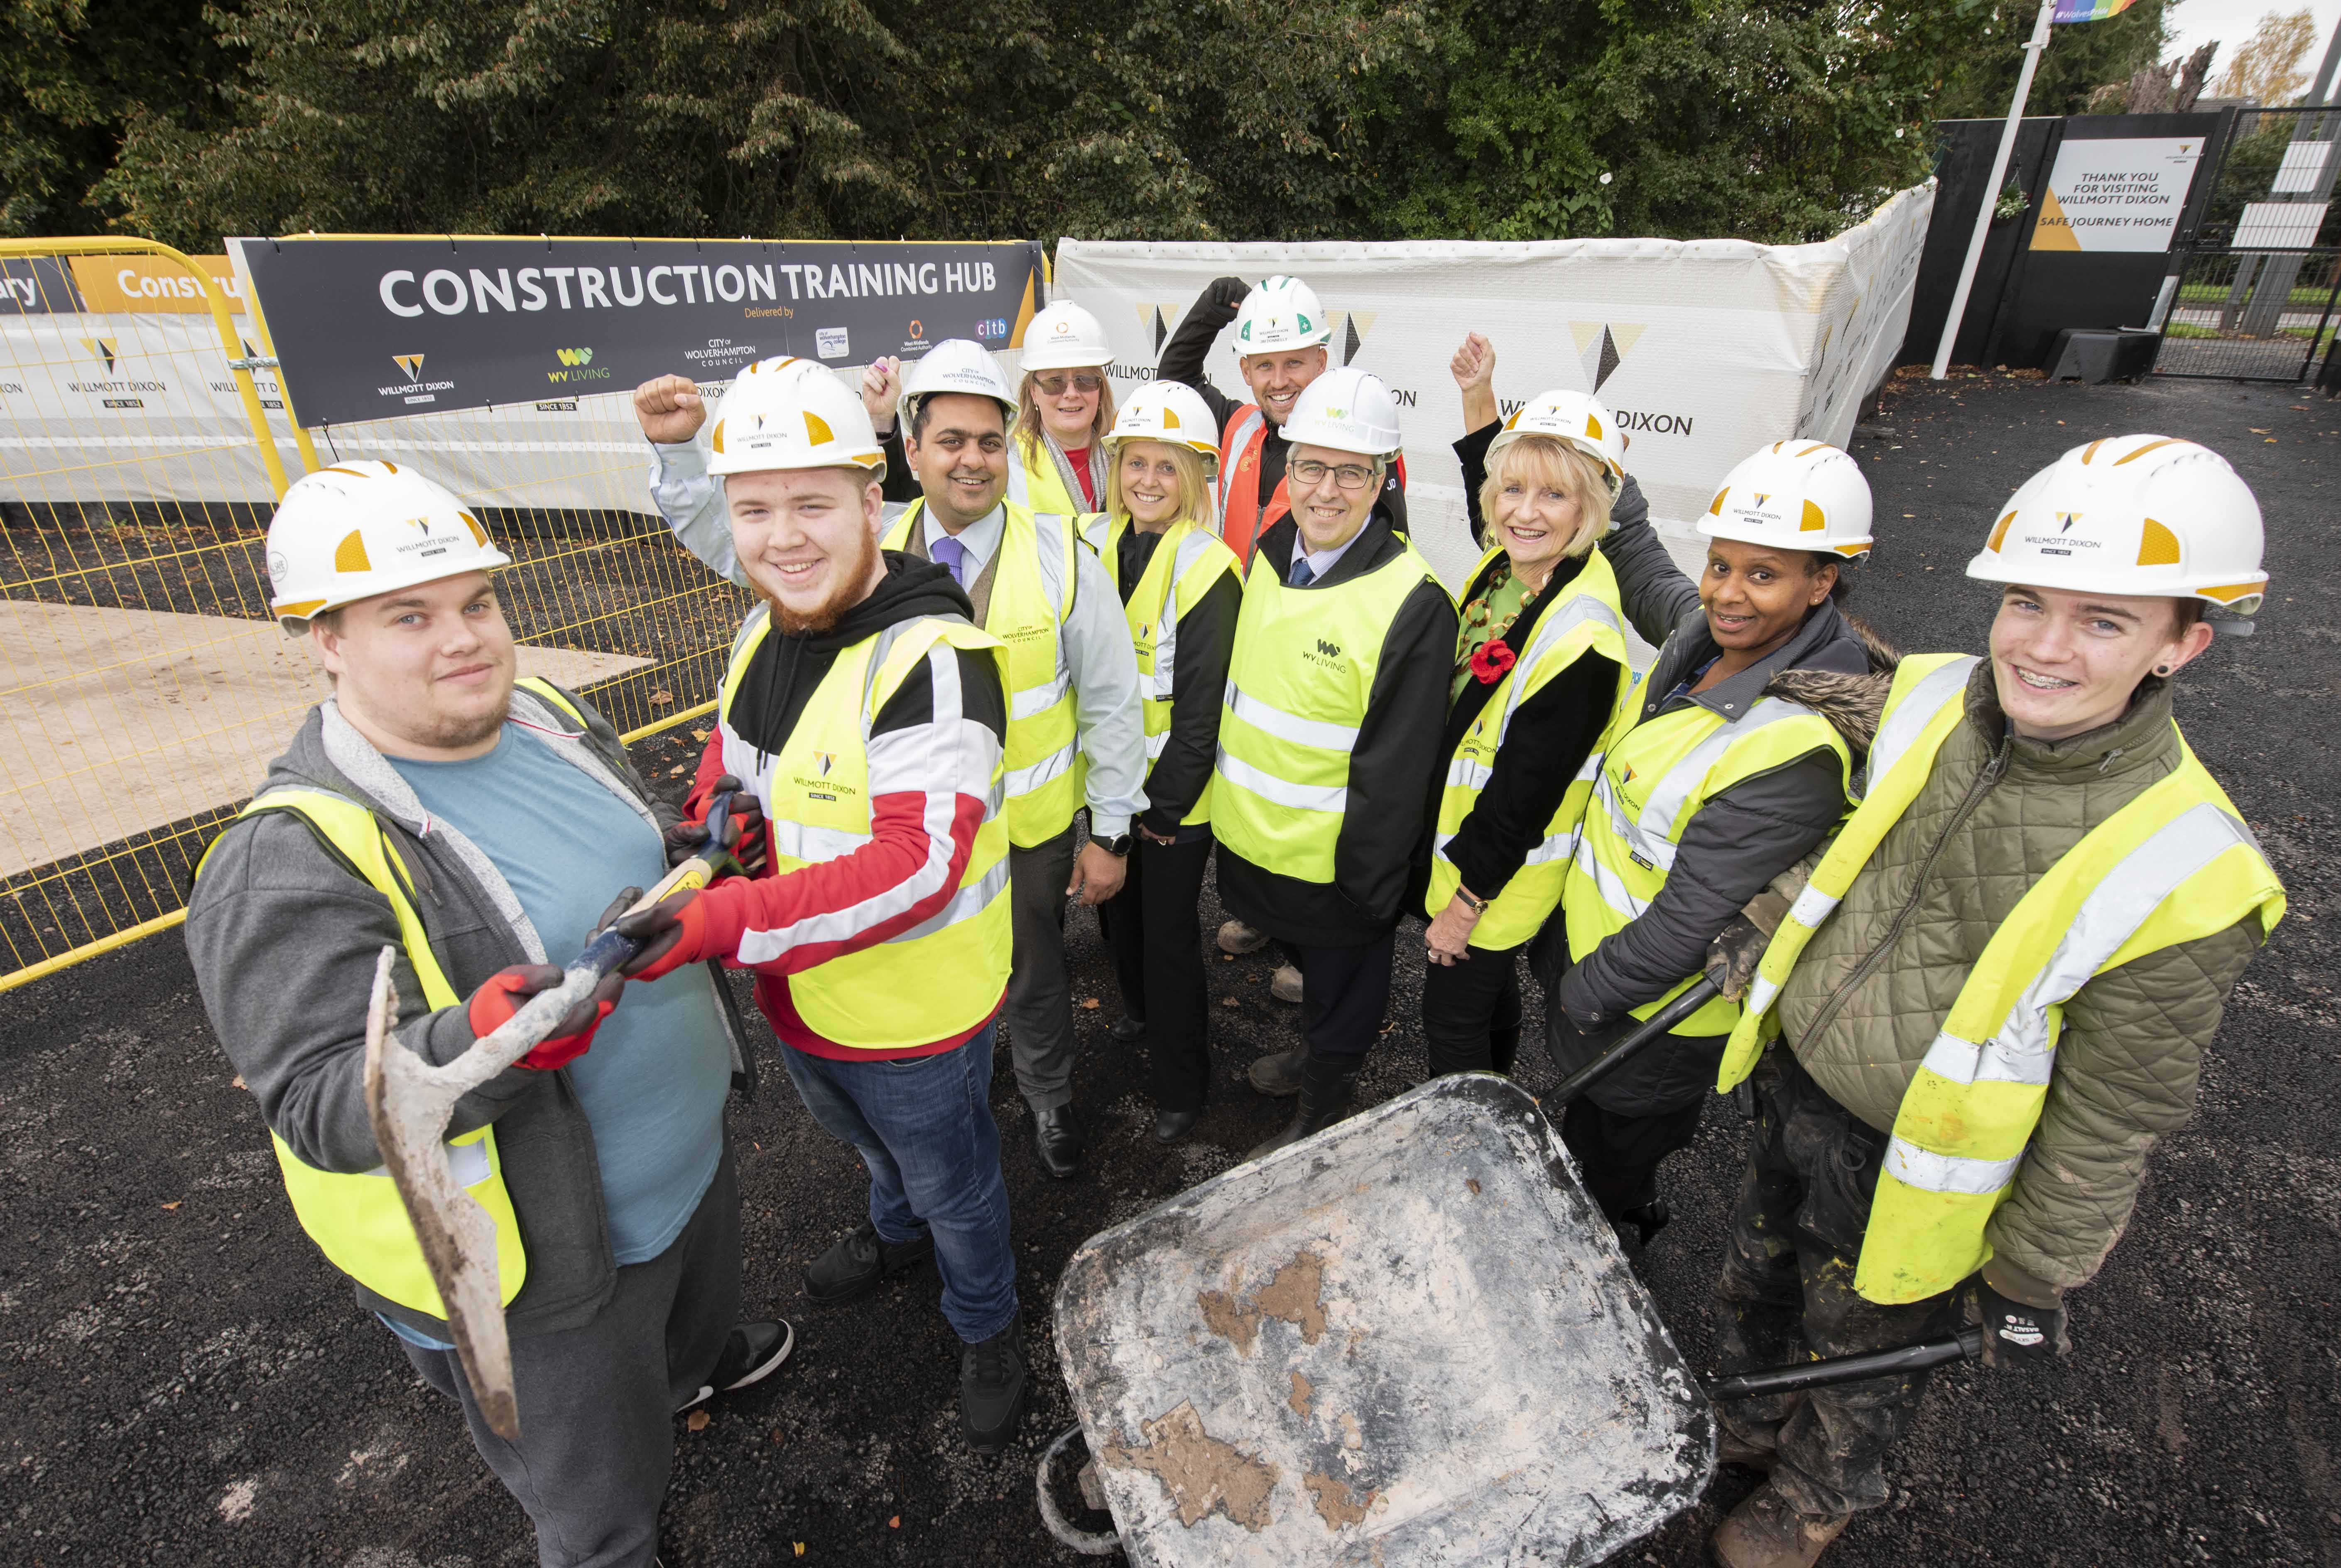 New construction training hub helping unemployed people in Wolverhampton